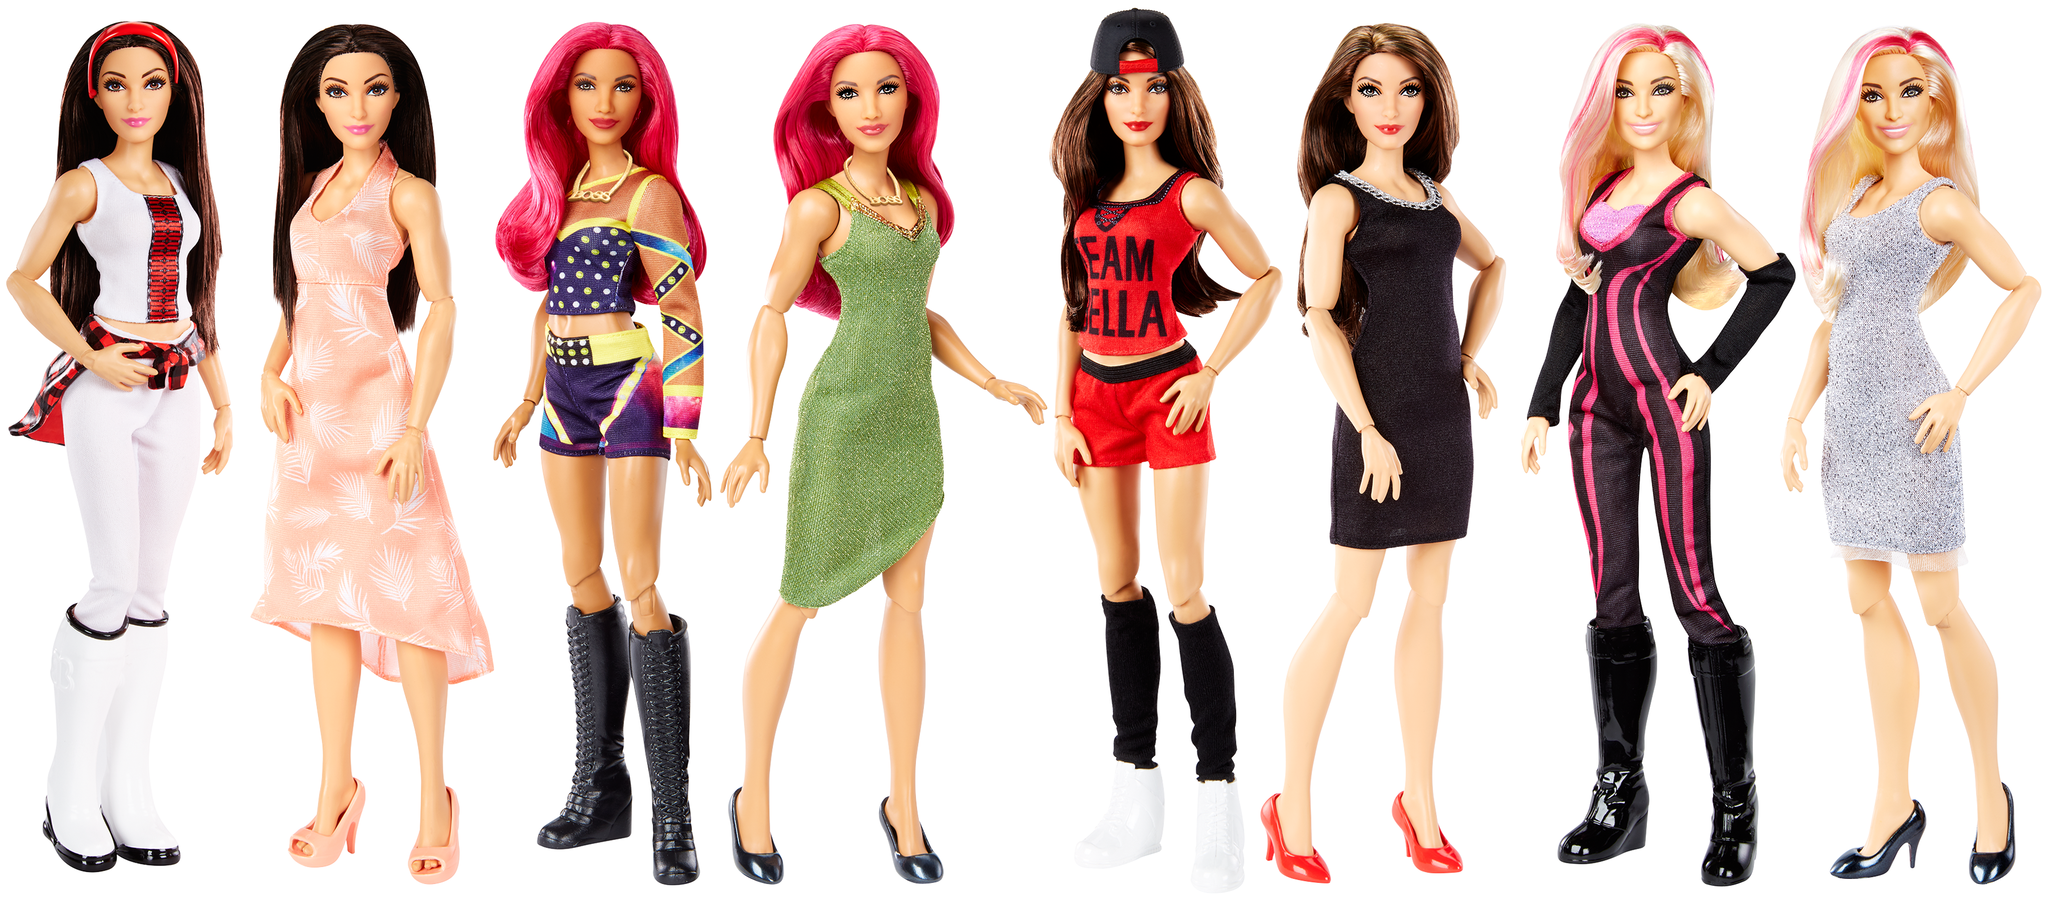 wwe and mattel u2019s girls toy line launches with first ever superstar fashion dolls